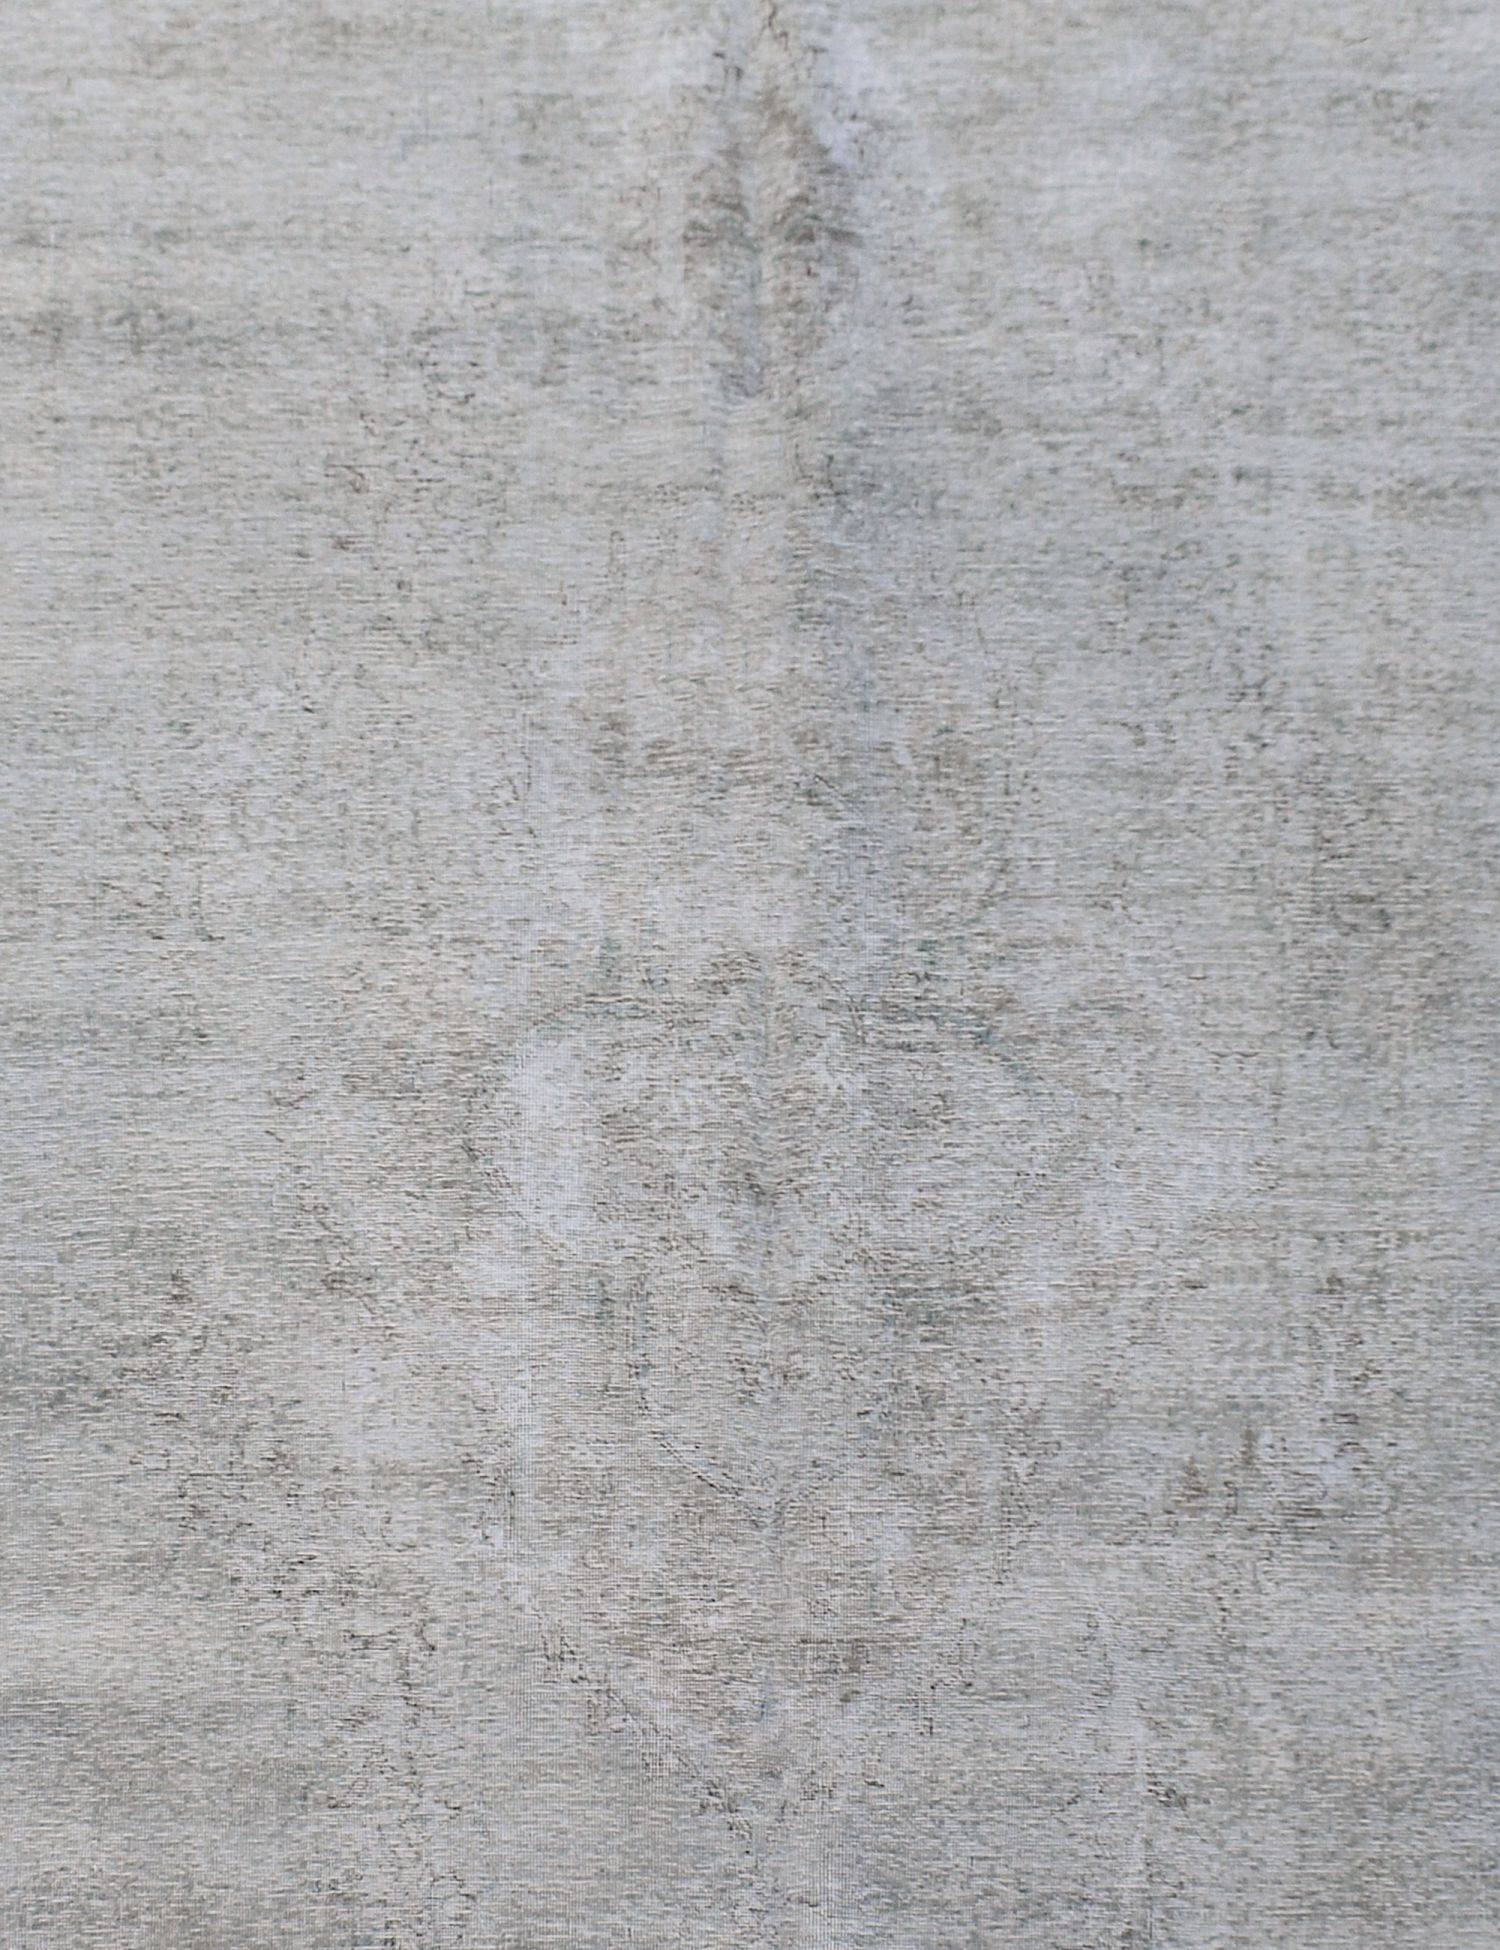 Vintage Carpet  grey <br/>371 x 282 cm